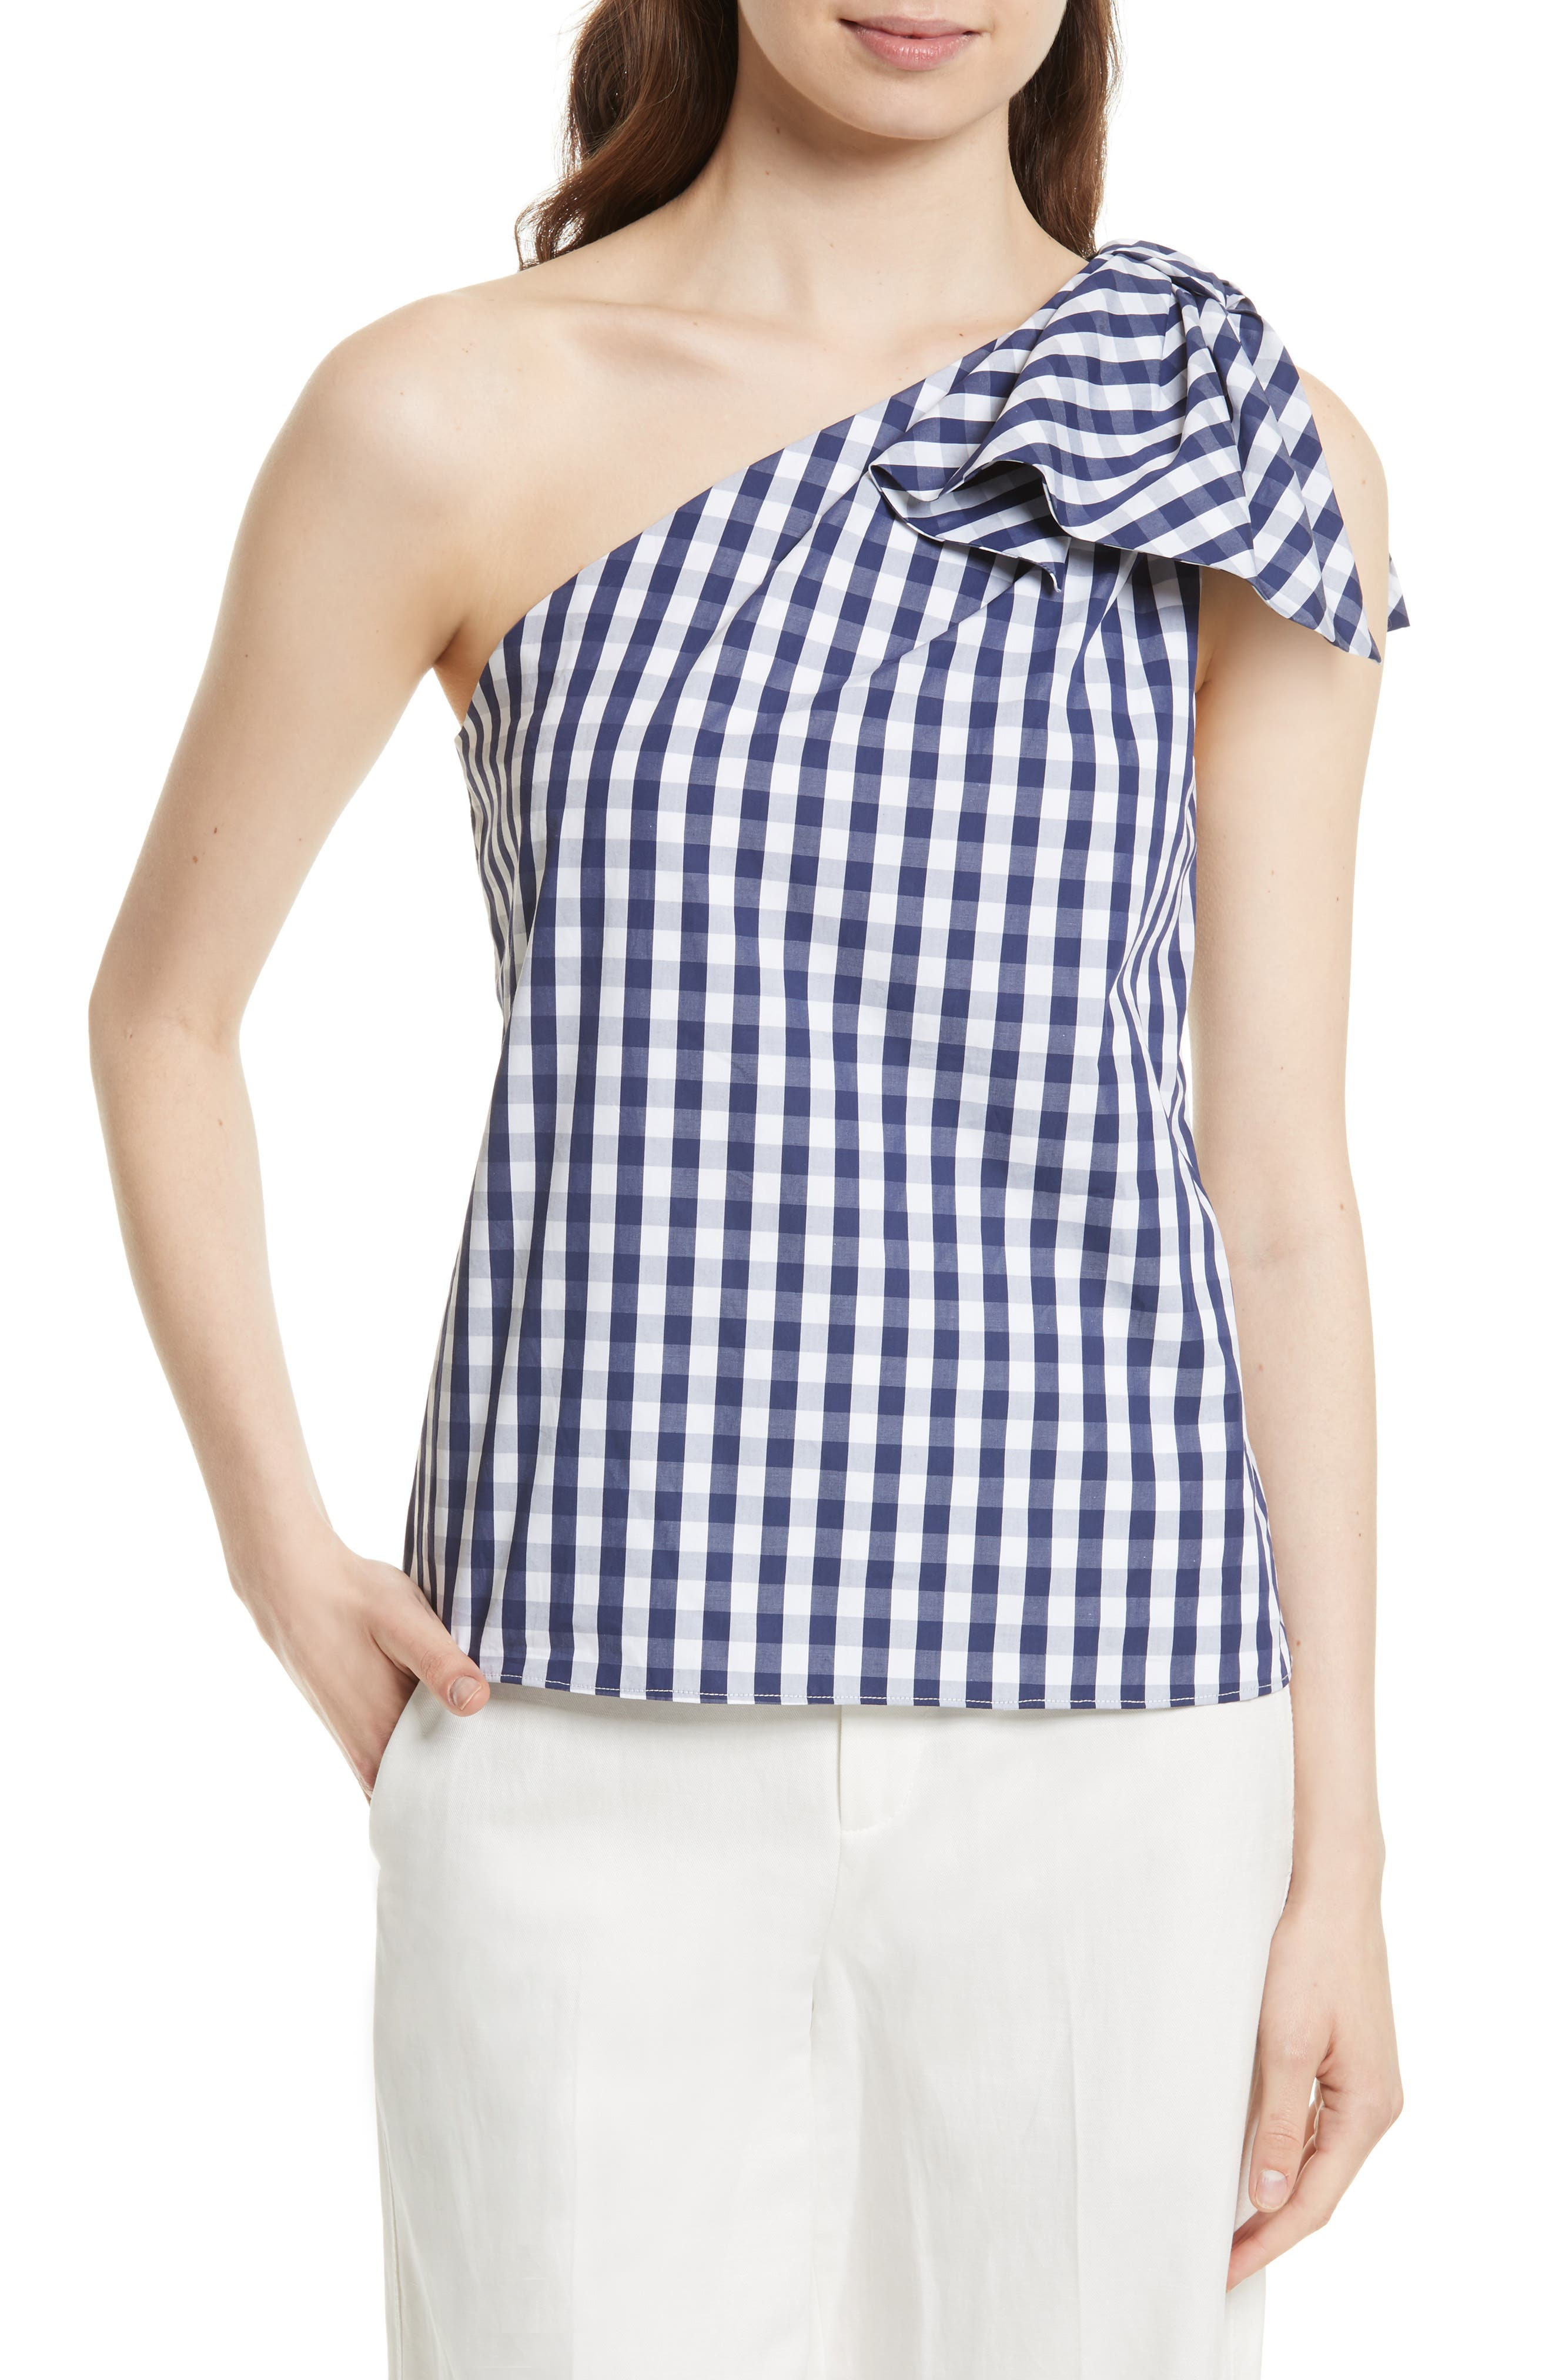 Main Image - Milly Cindy One Shoulder Gingham Top